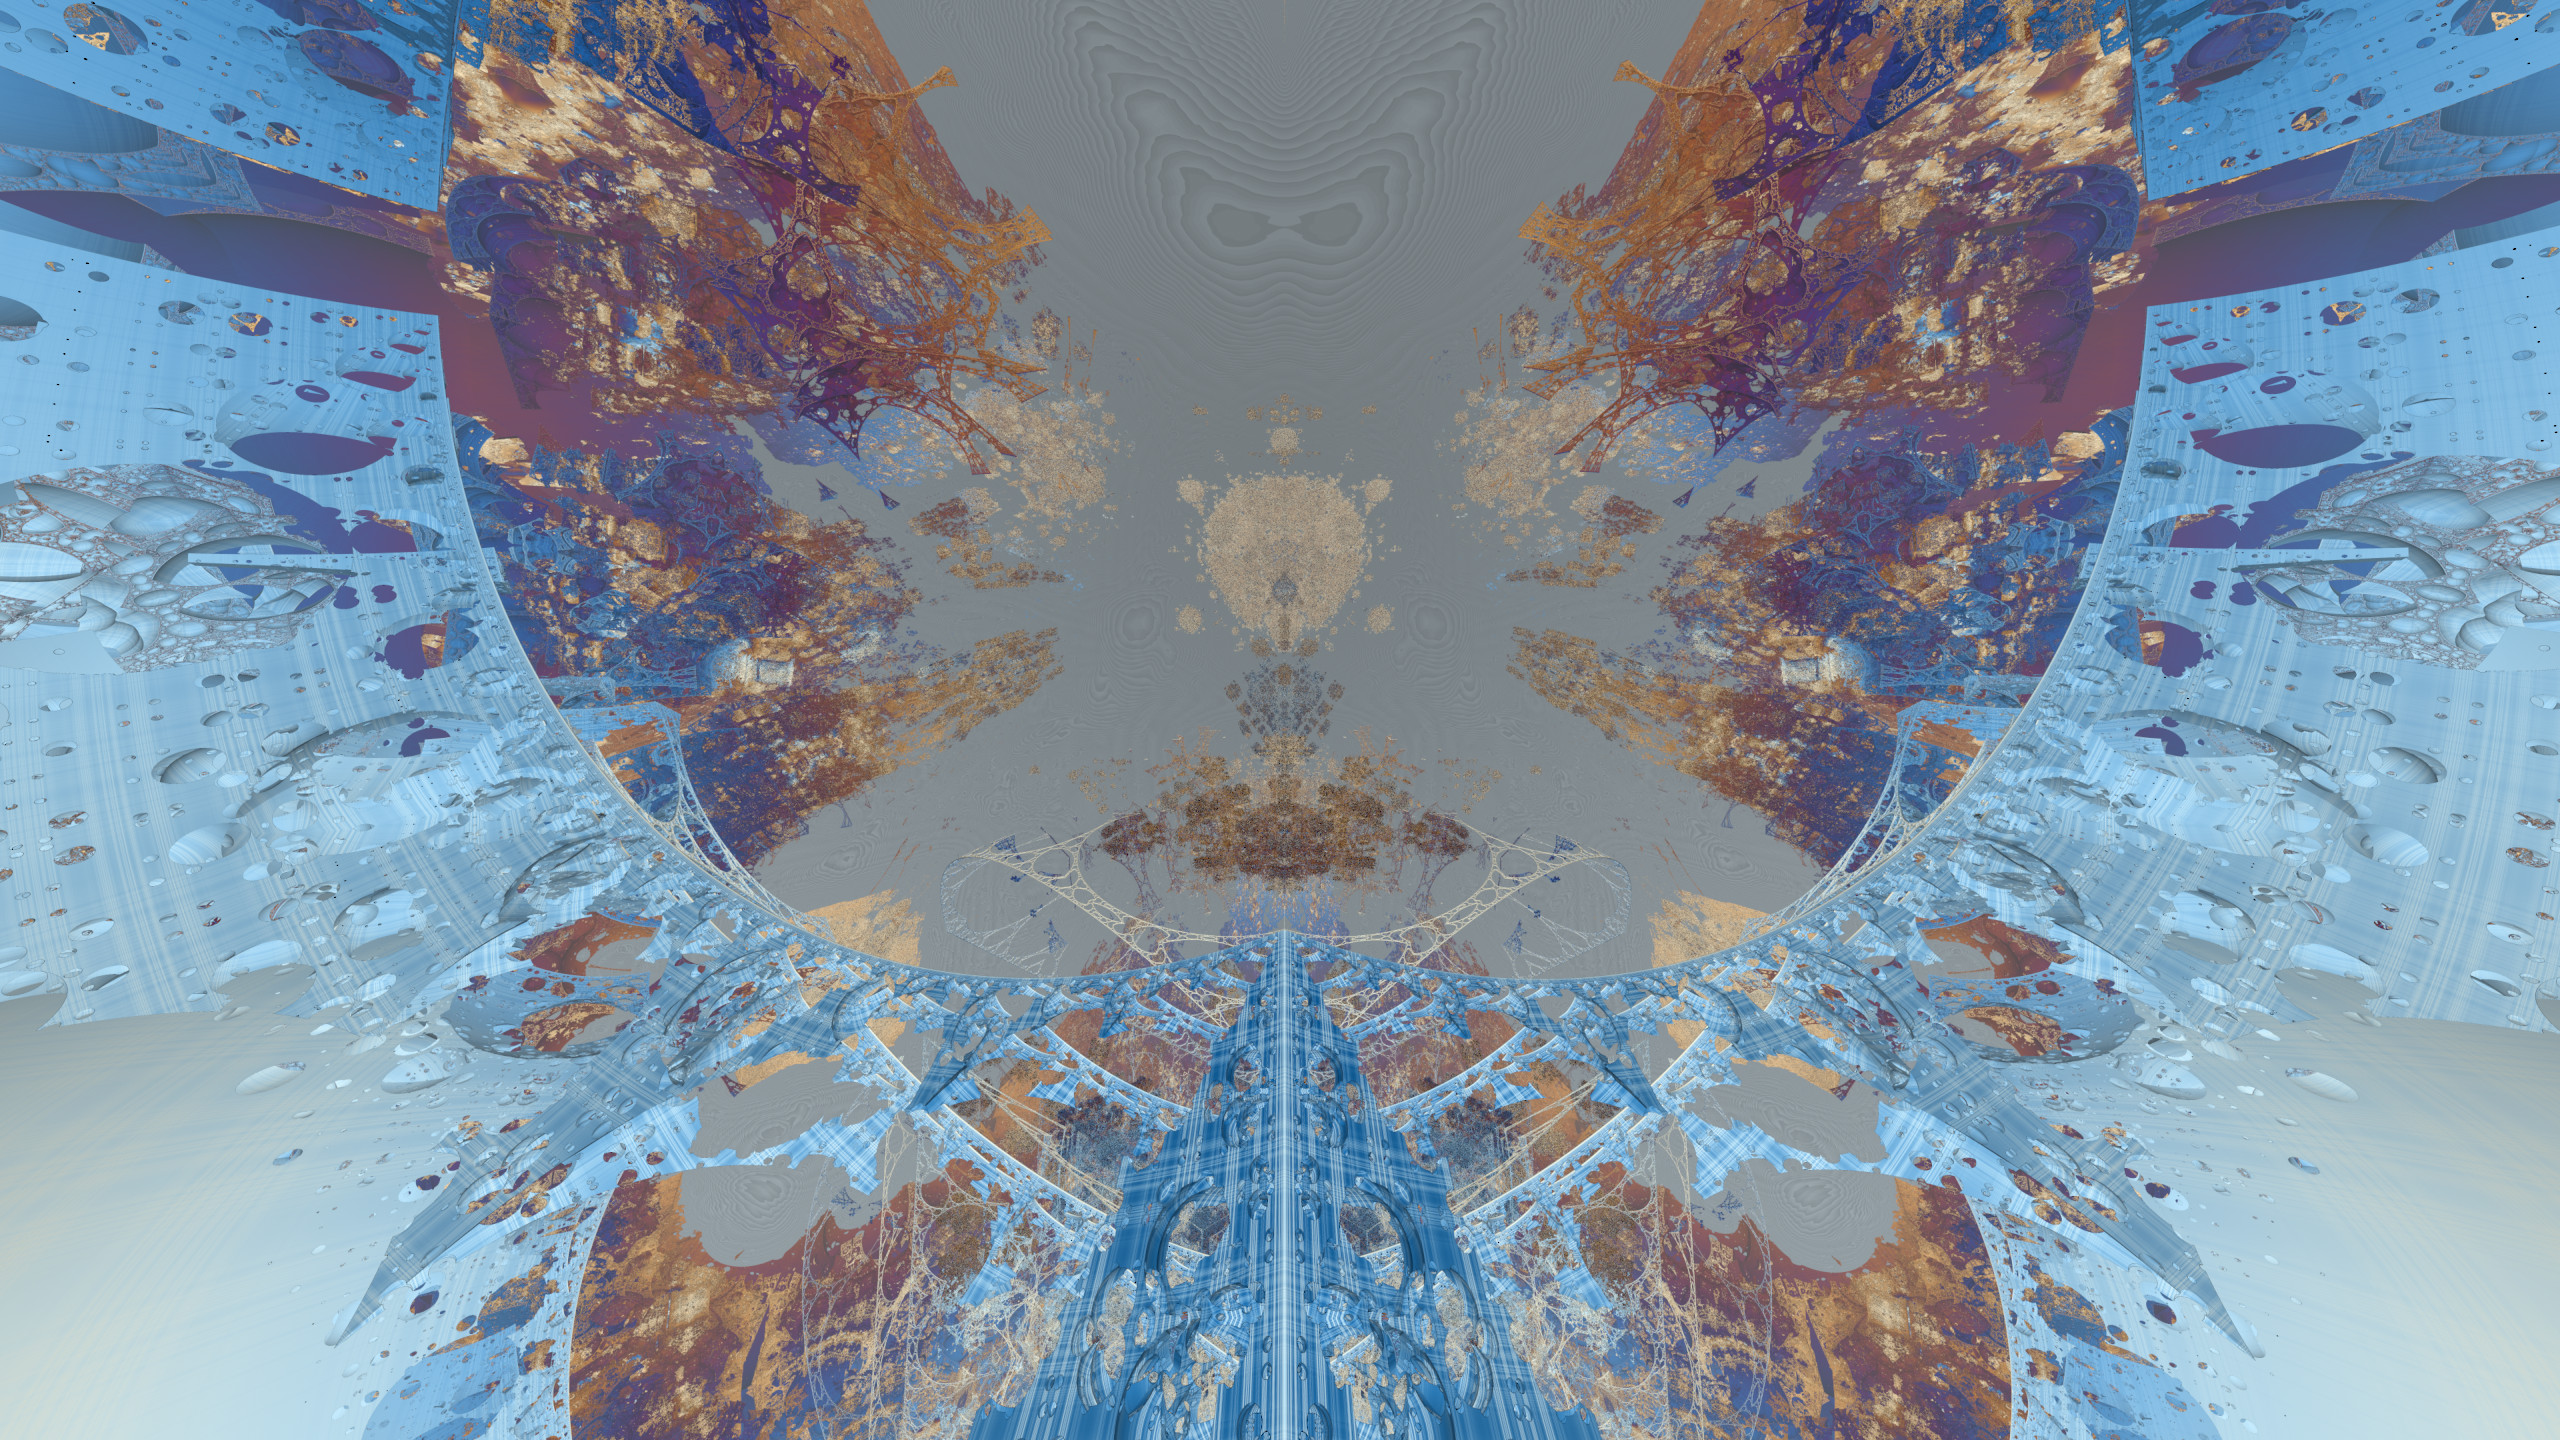 Negative scale Mandelbox: Looking out